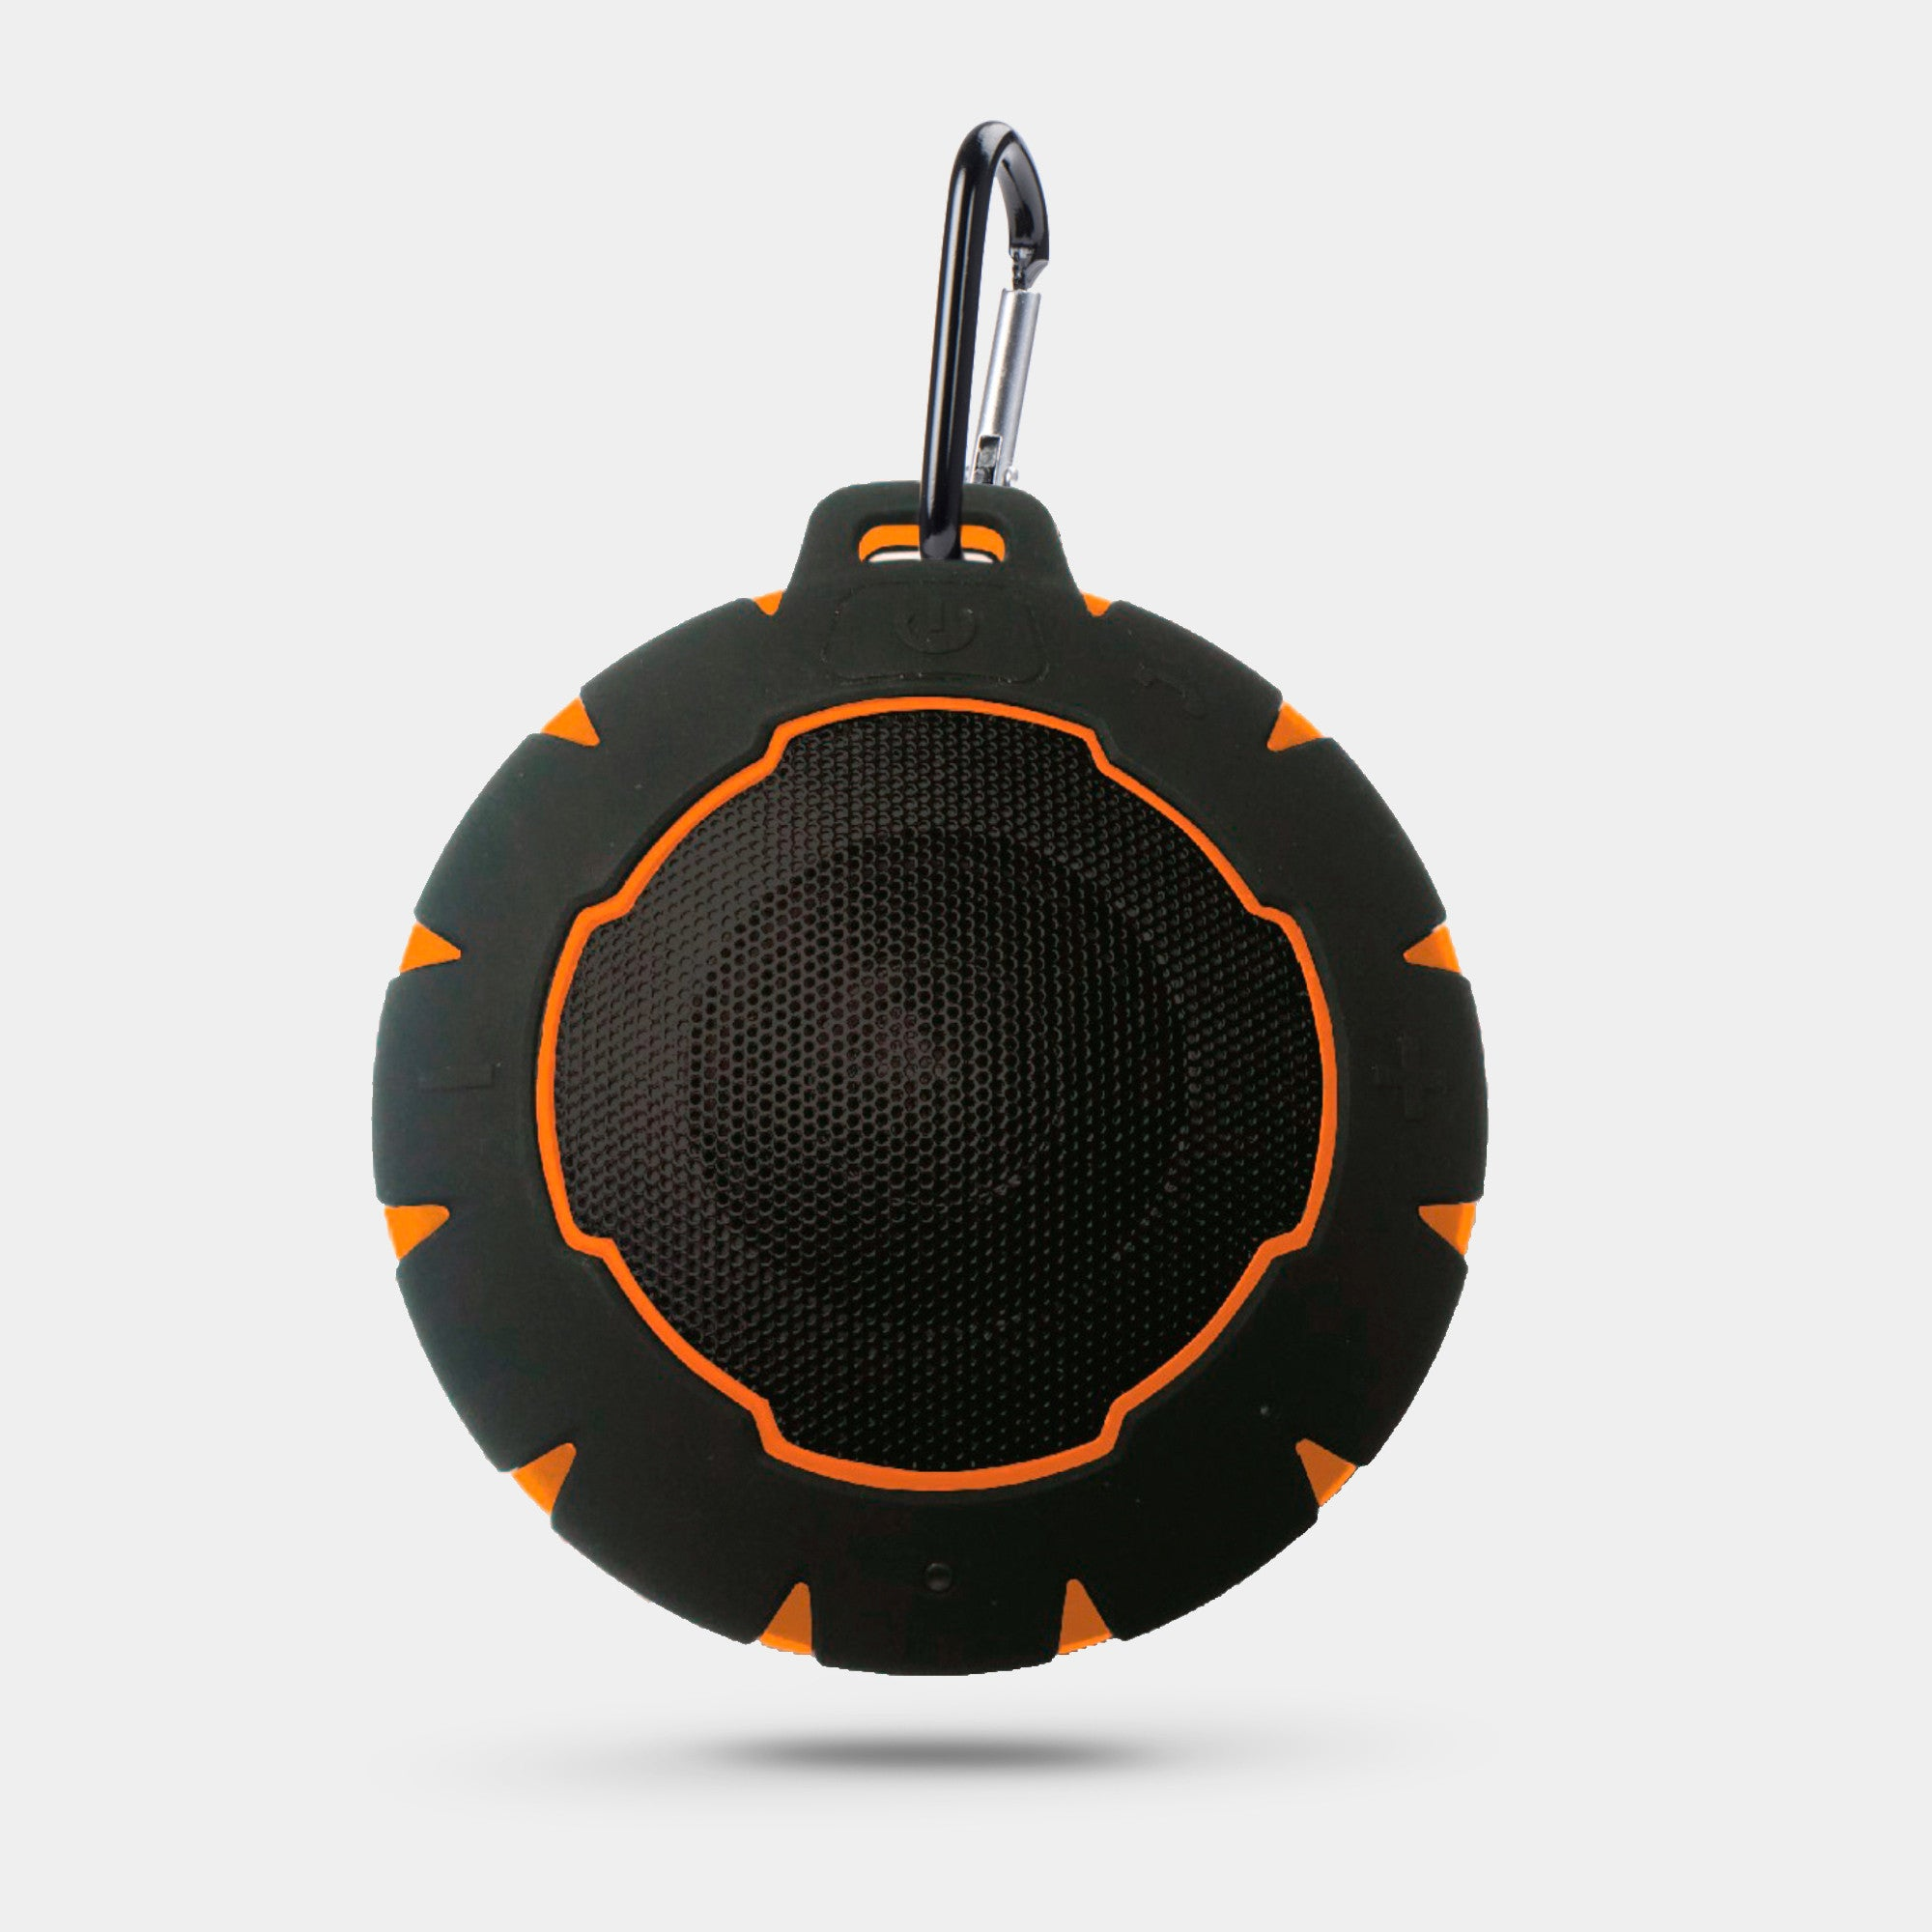 NUSOUND WAVE RIDER Waterproof IPX7 Speaker (Orange)